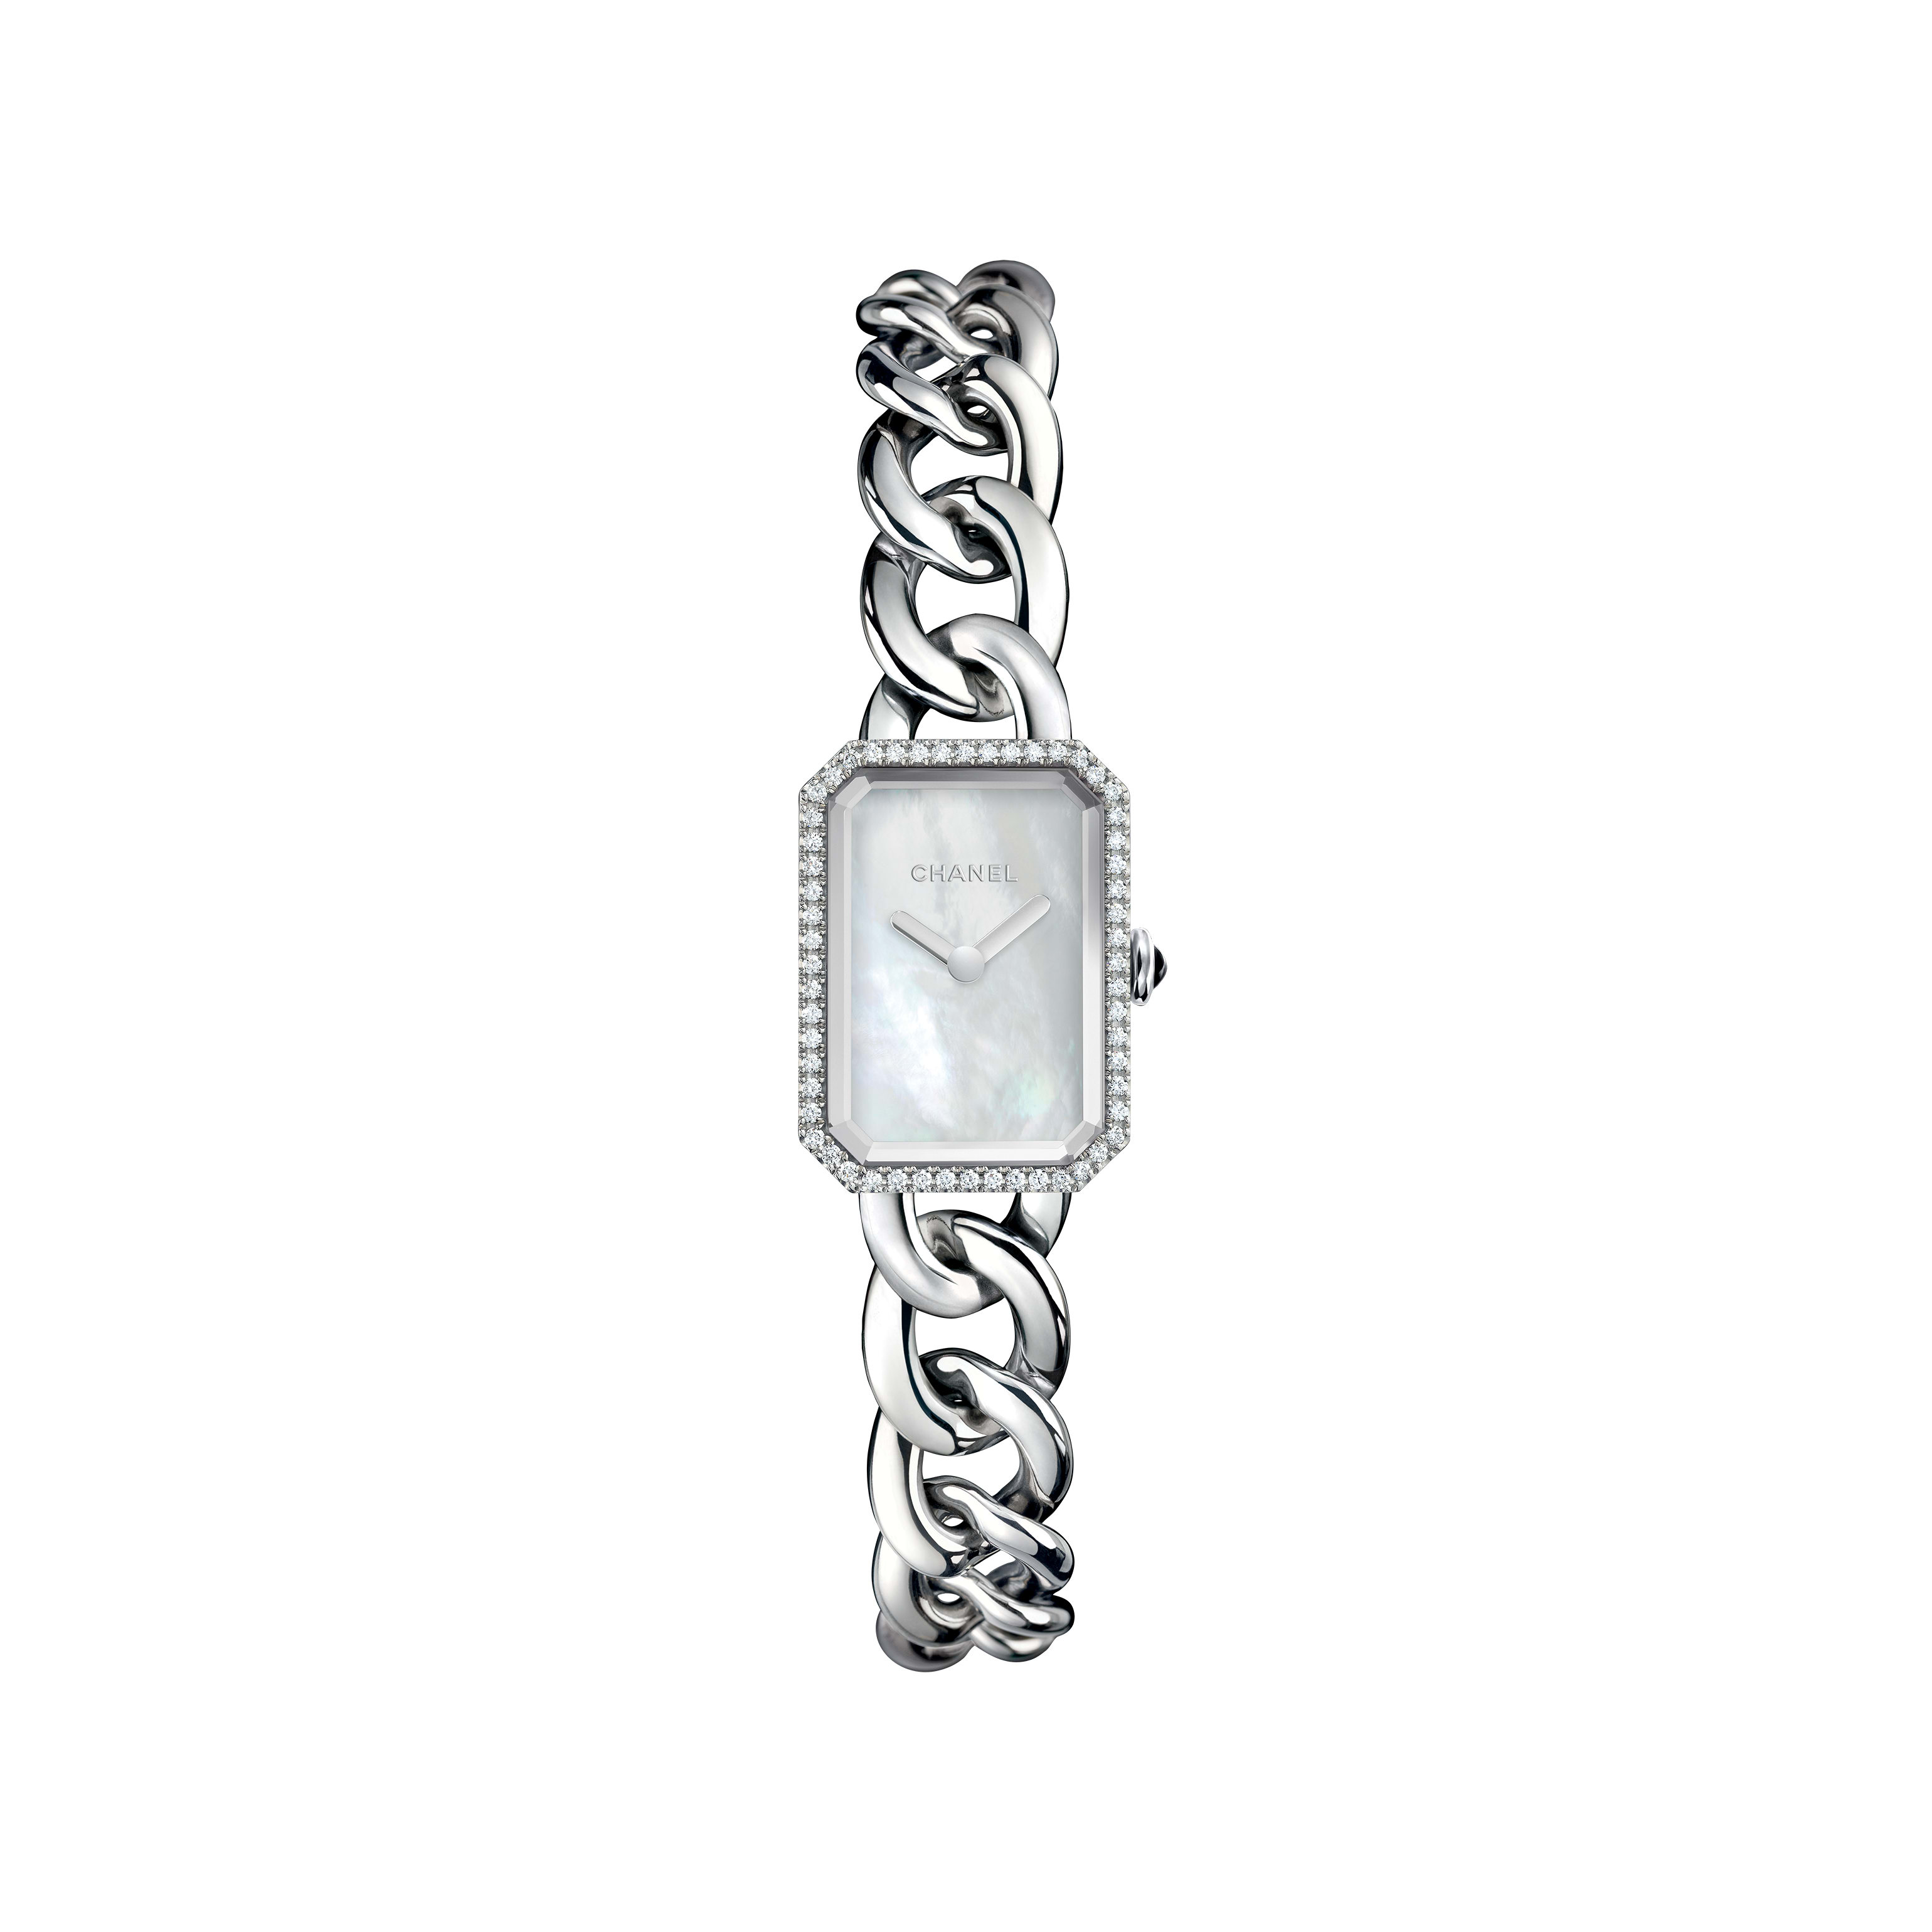 Première Chaîne - Small version, steel and diamonds, white mother-of-pearl dial - CHANEL - Default view - see standard sized version